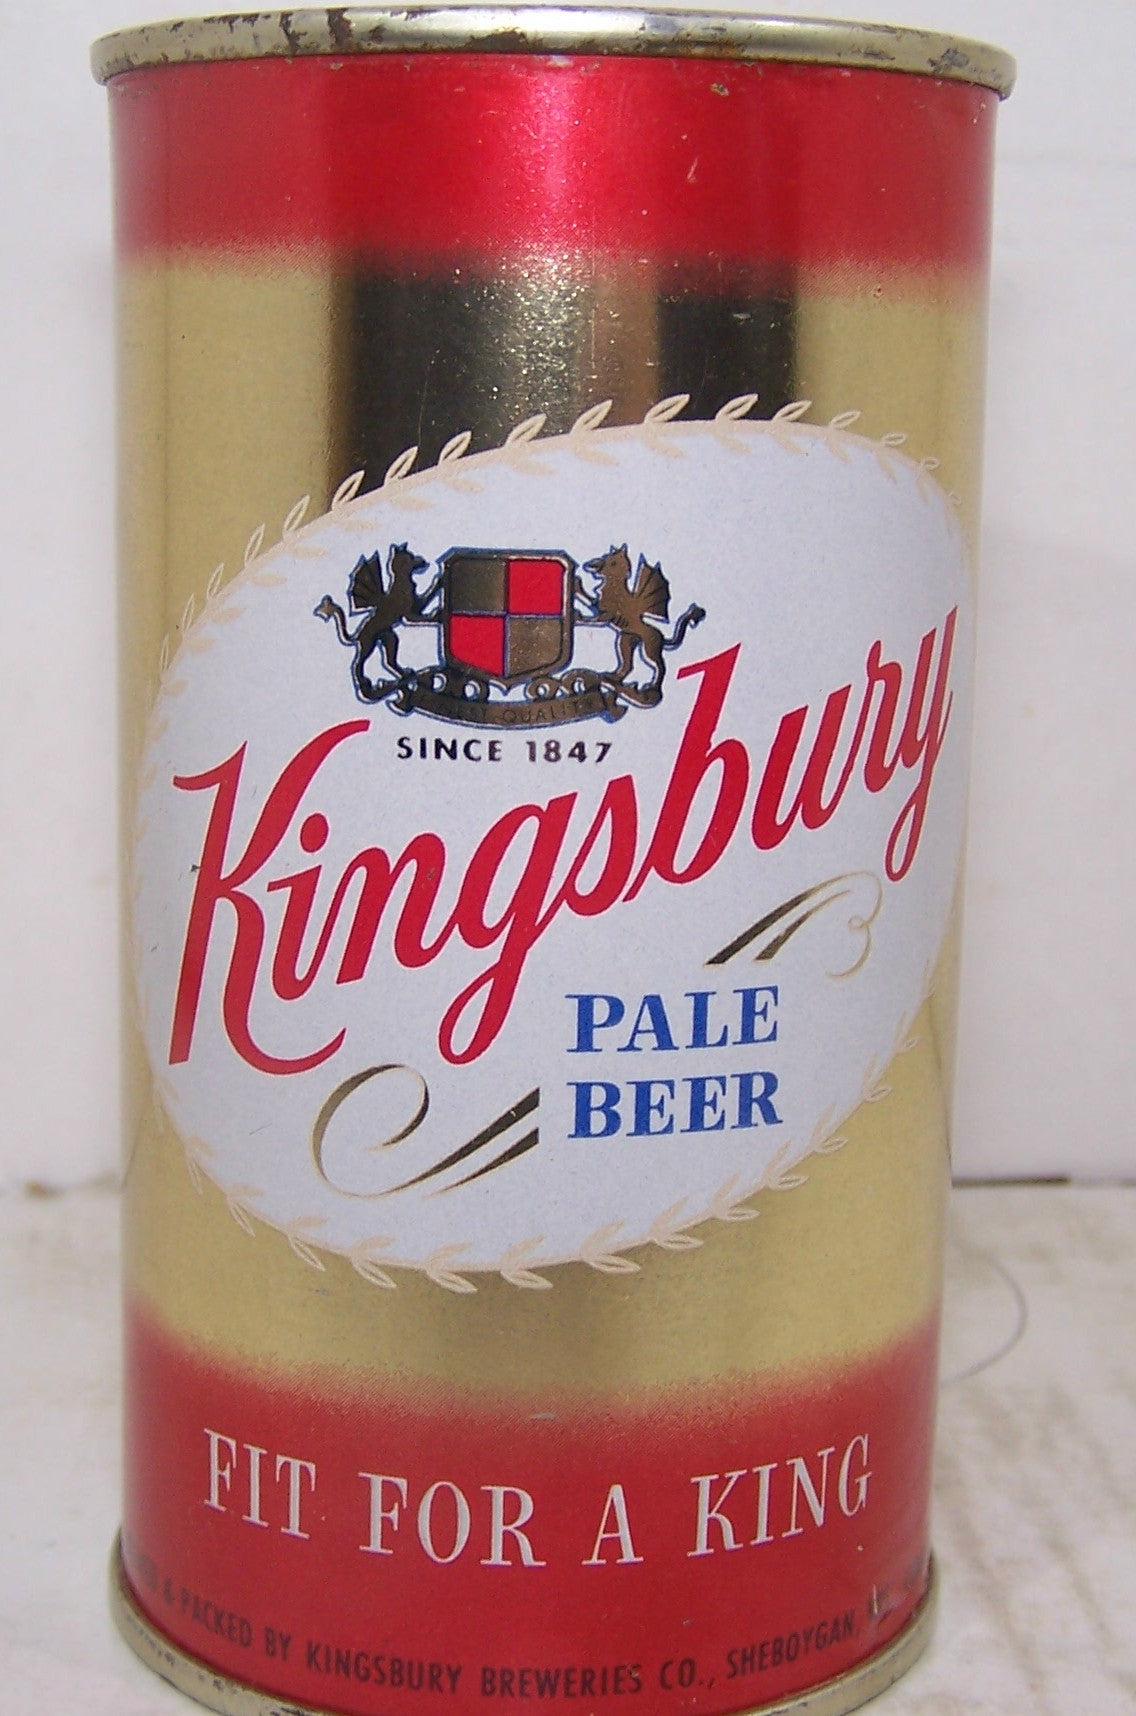 Kingsbury Pale Beer, USBC 88-9, Grade A1+ Sold 2/13/15